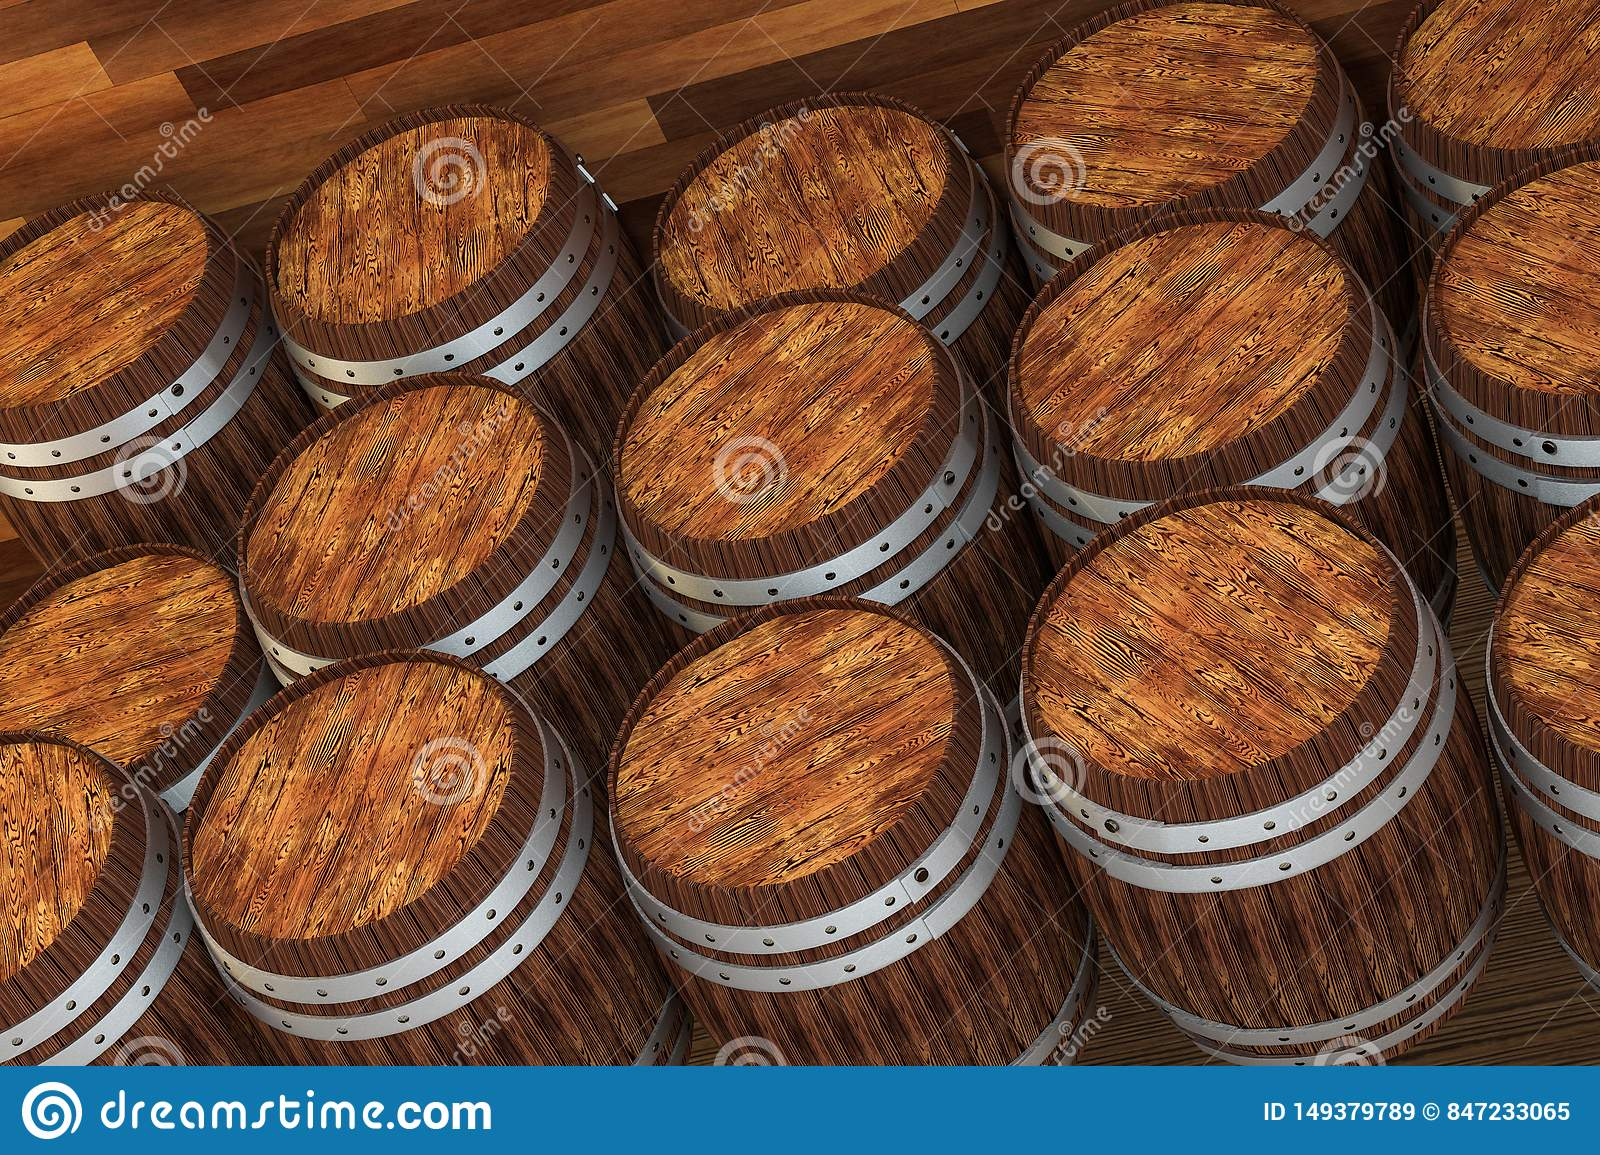 Wooden winery barrel with warm color background, 3d rendering